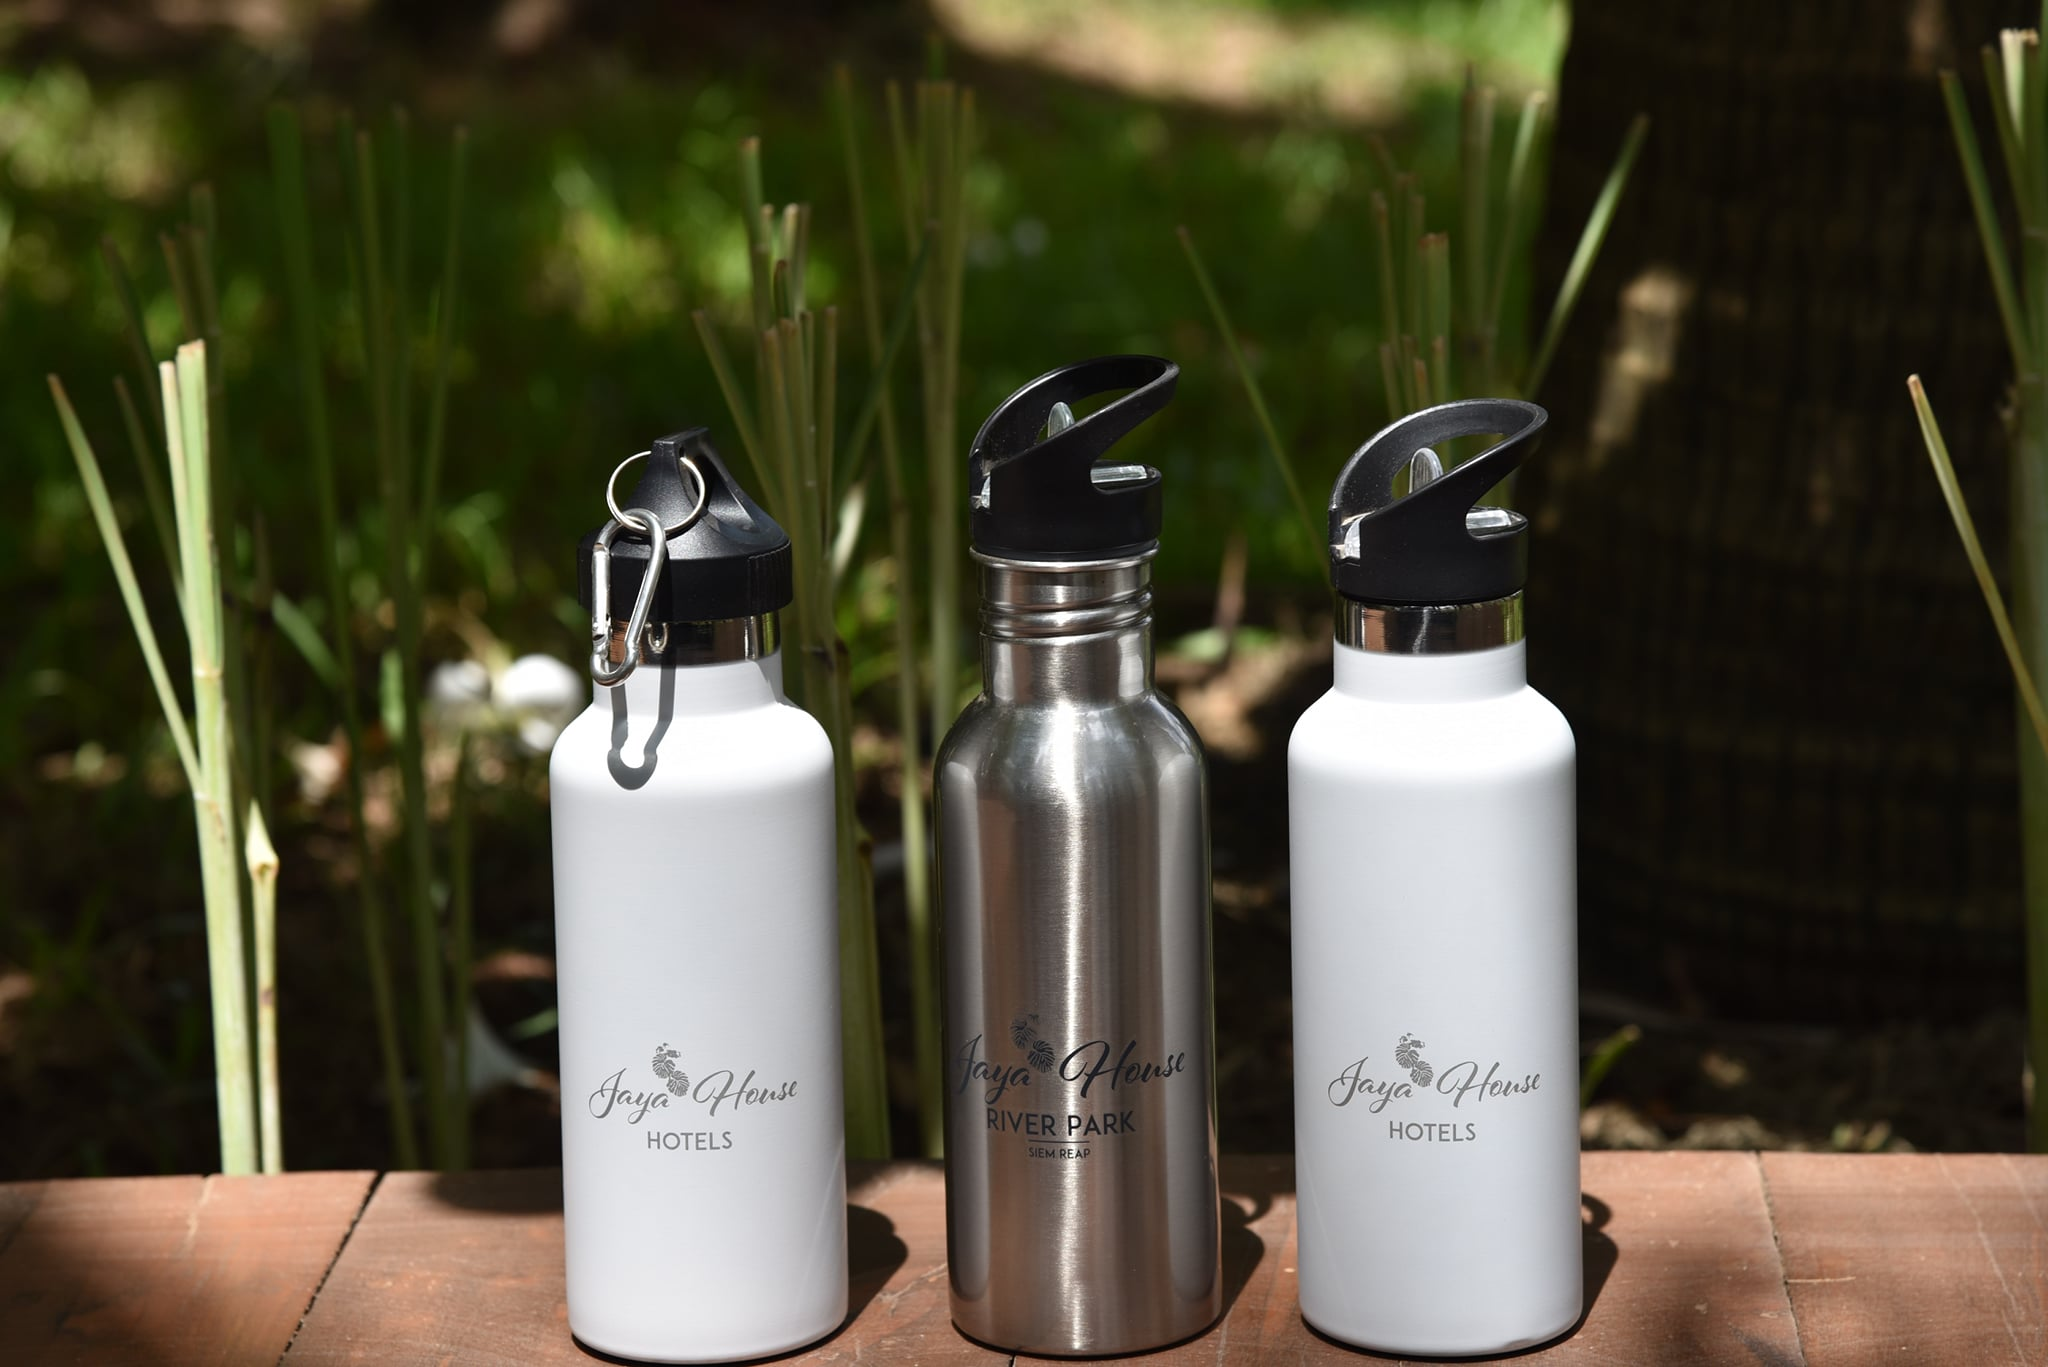 Refillable Water Bottles from Jaya House